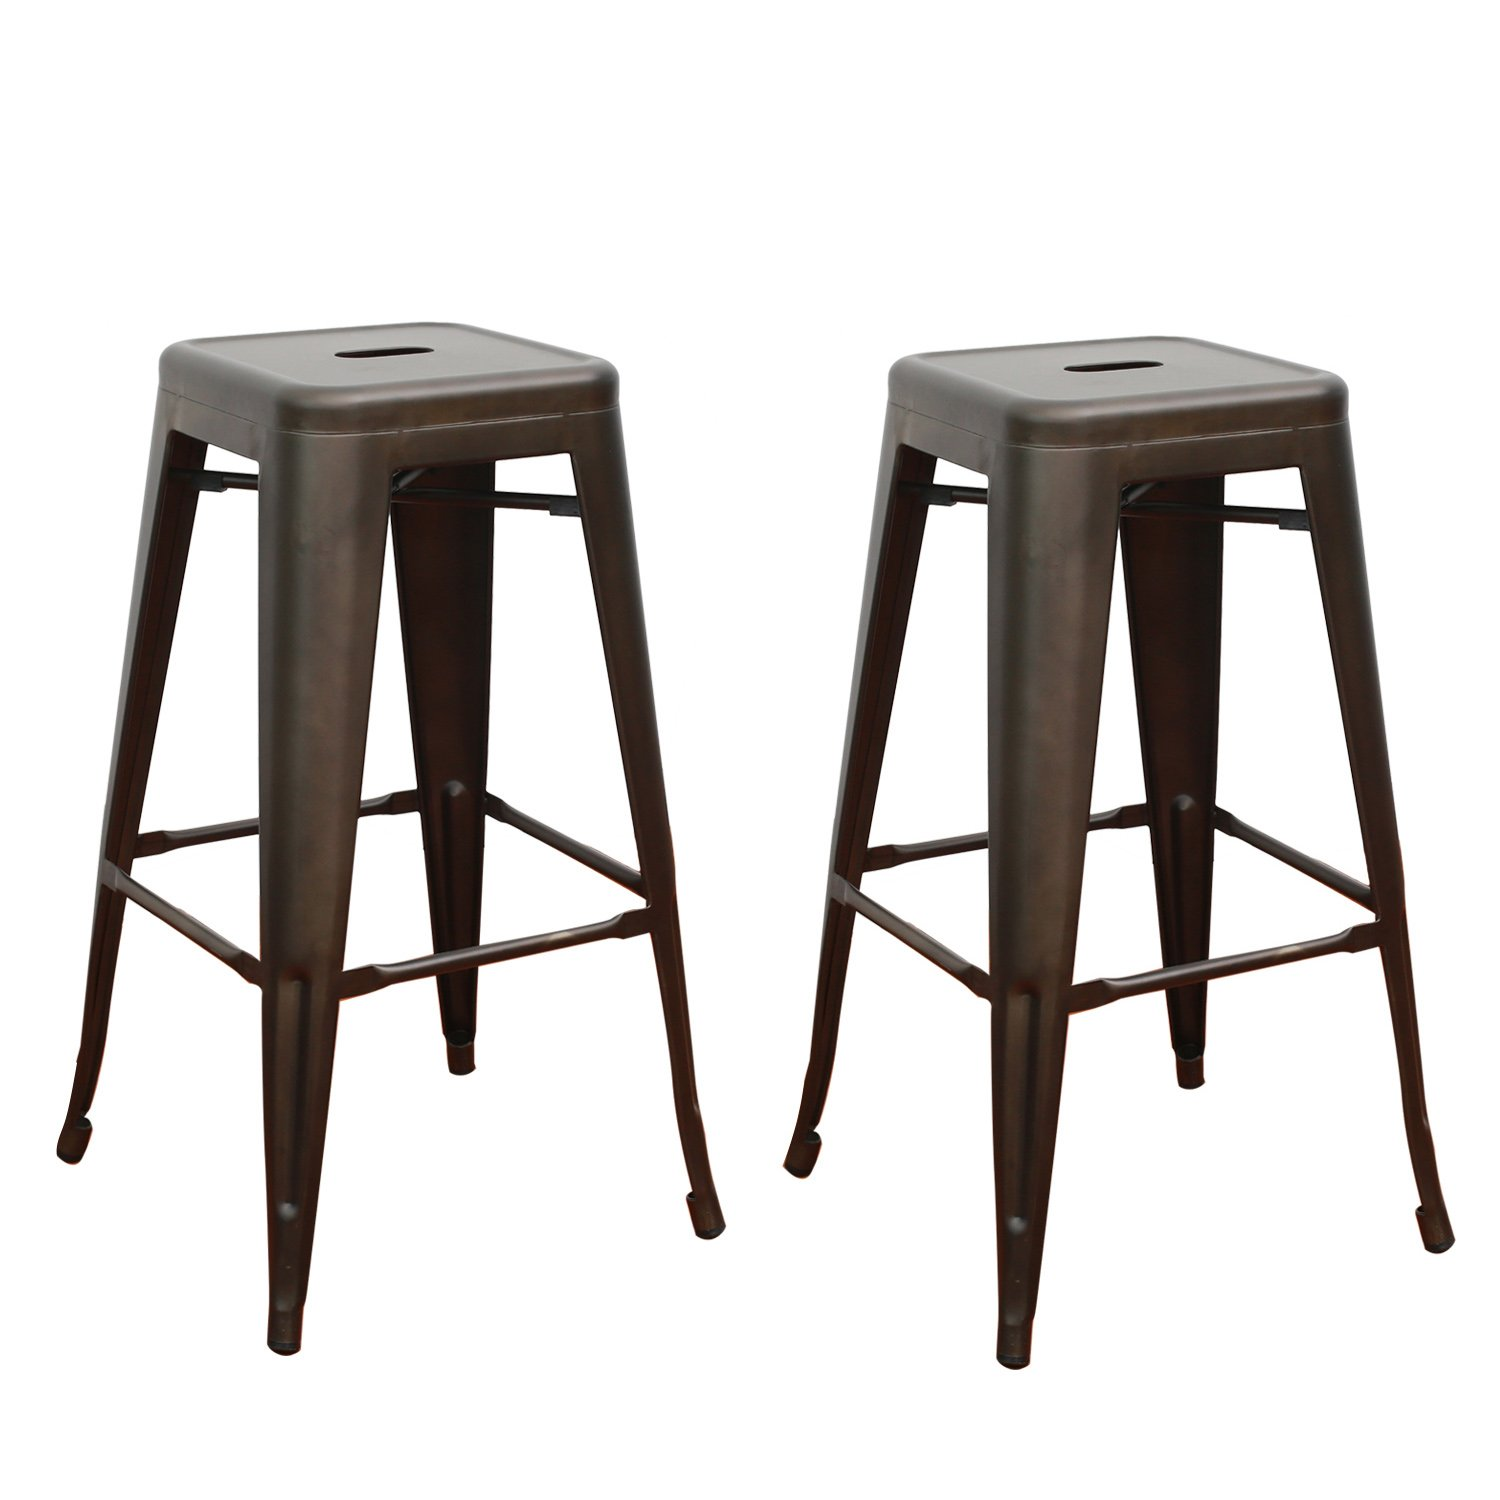 Adeco Tolix Style Metal Stackable High Counter Barstools – Matte Dark Bronze – Height 30 Inches – Set of 2